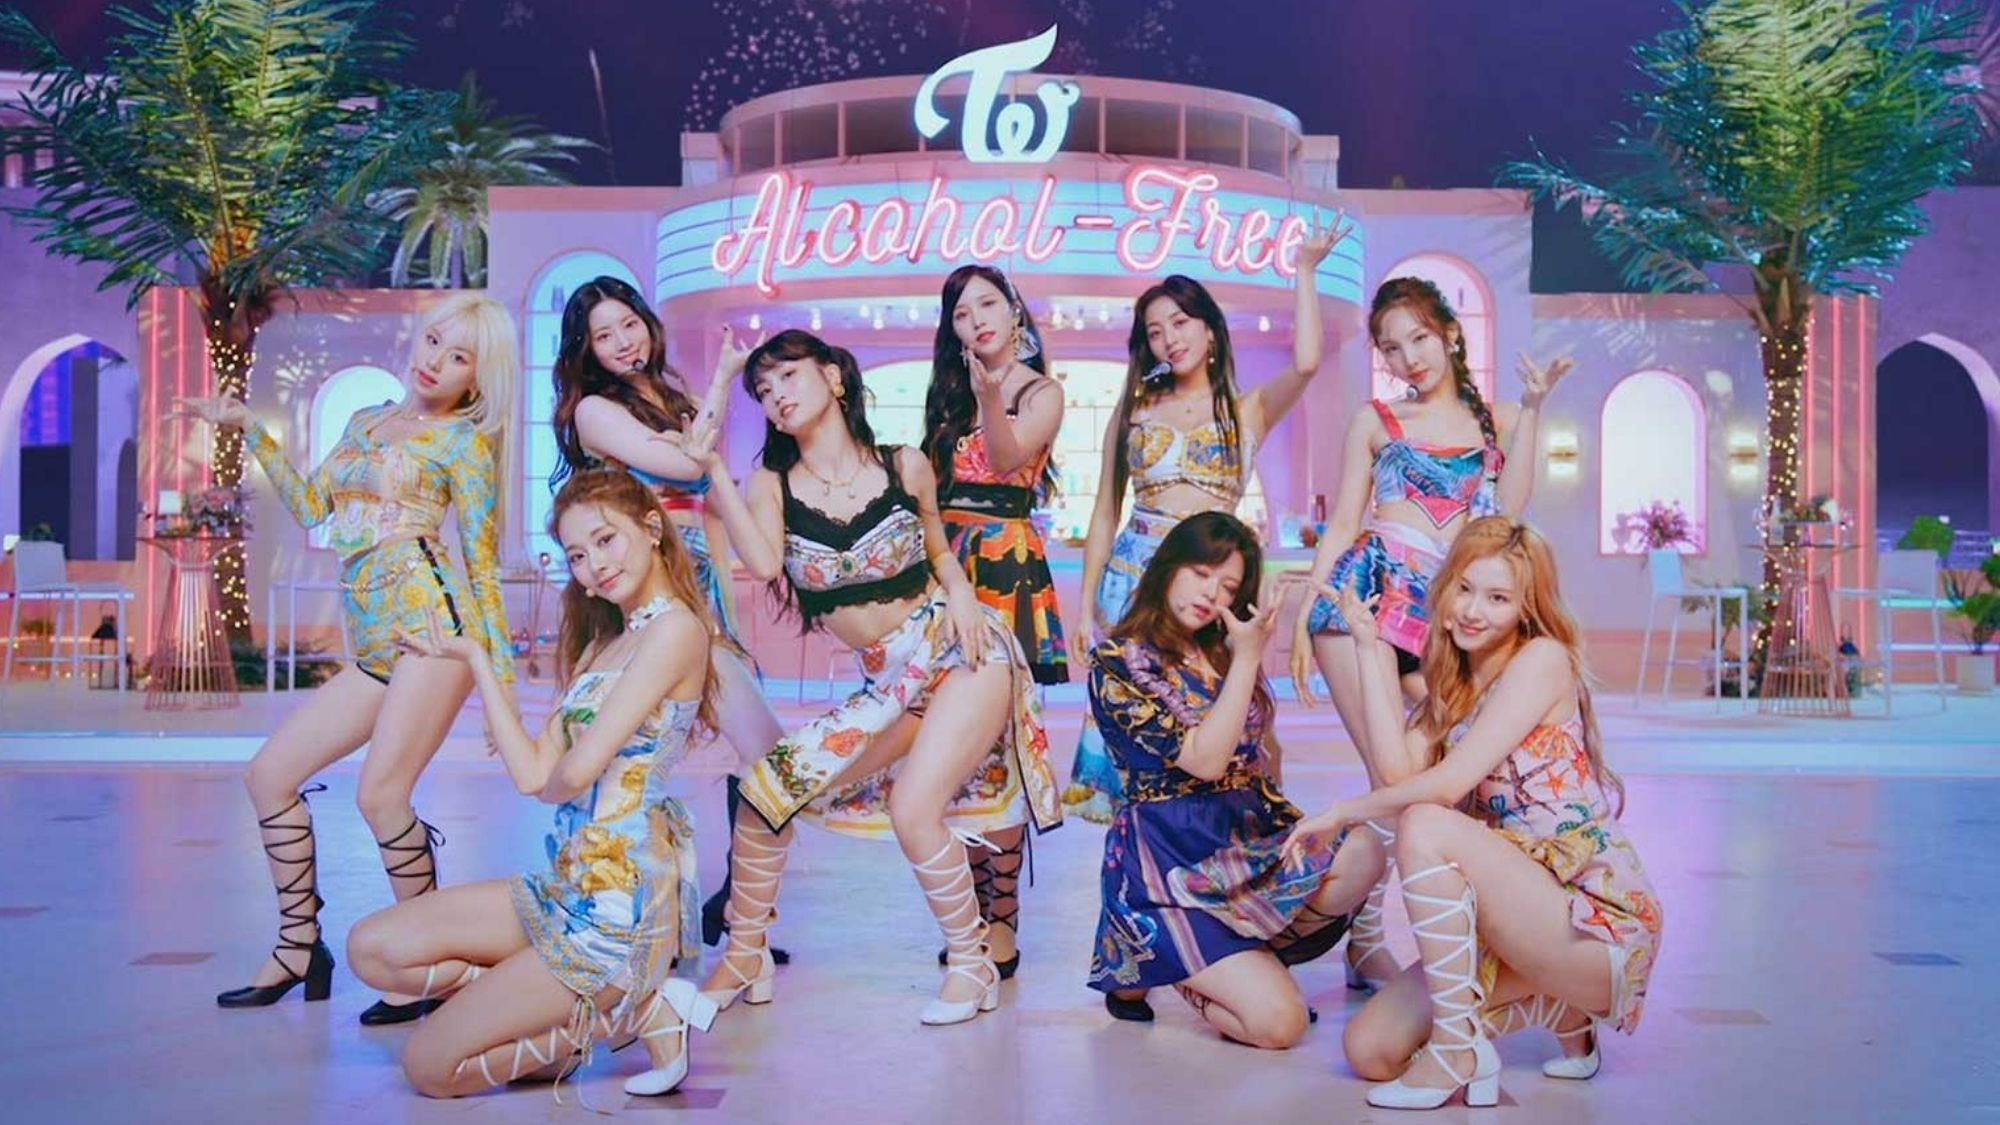 Drunk in love as TWICE drops music video for 'Alcohol-Free'